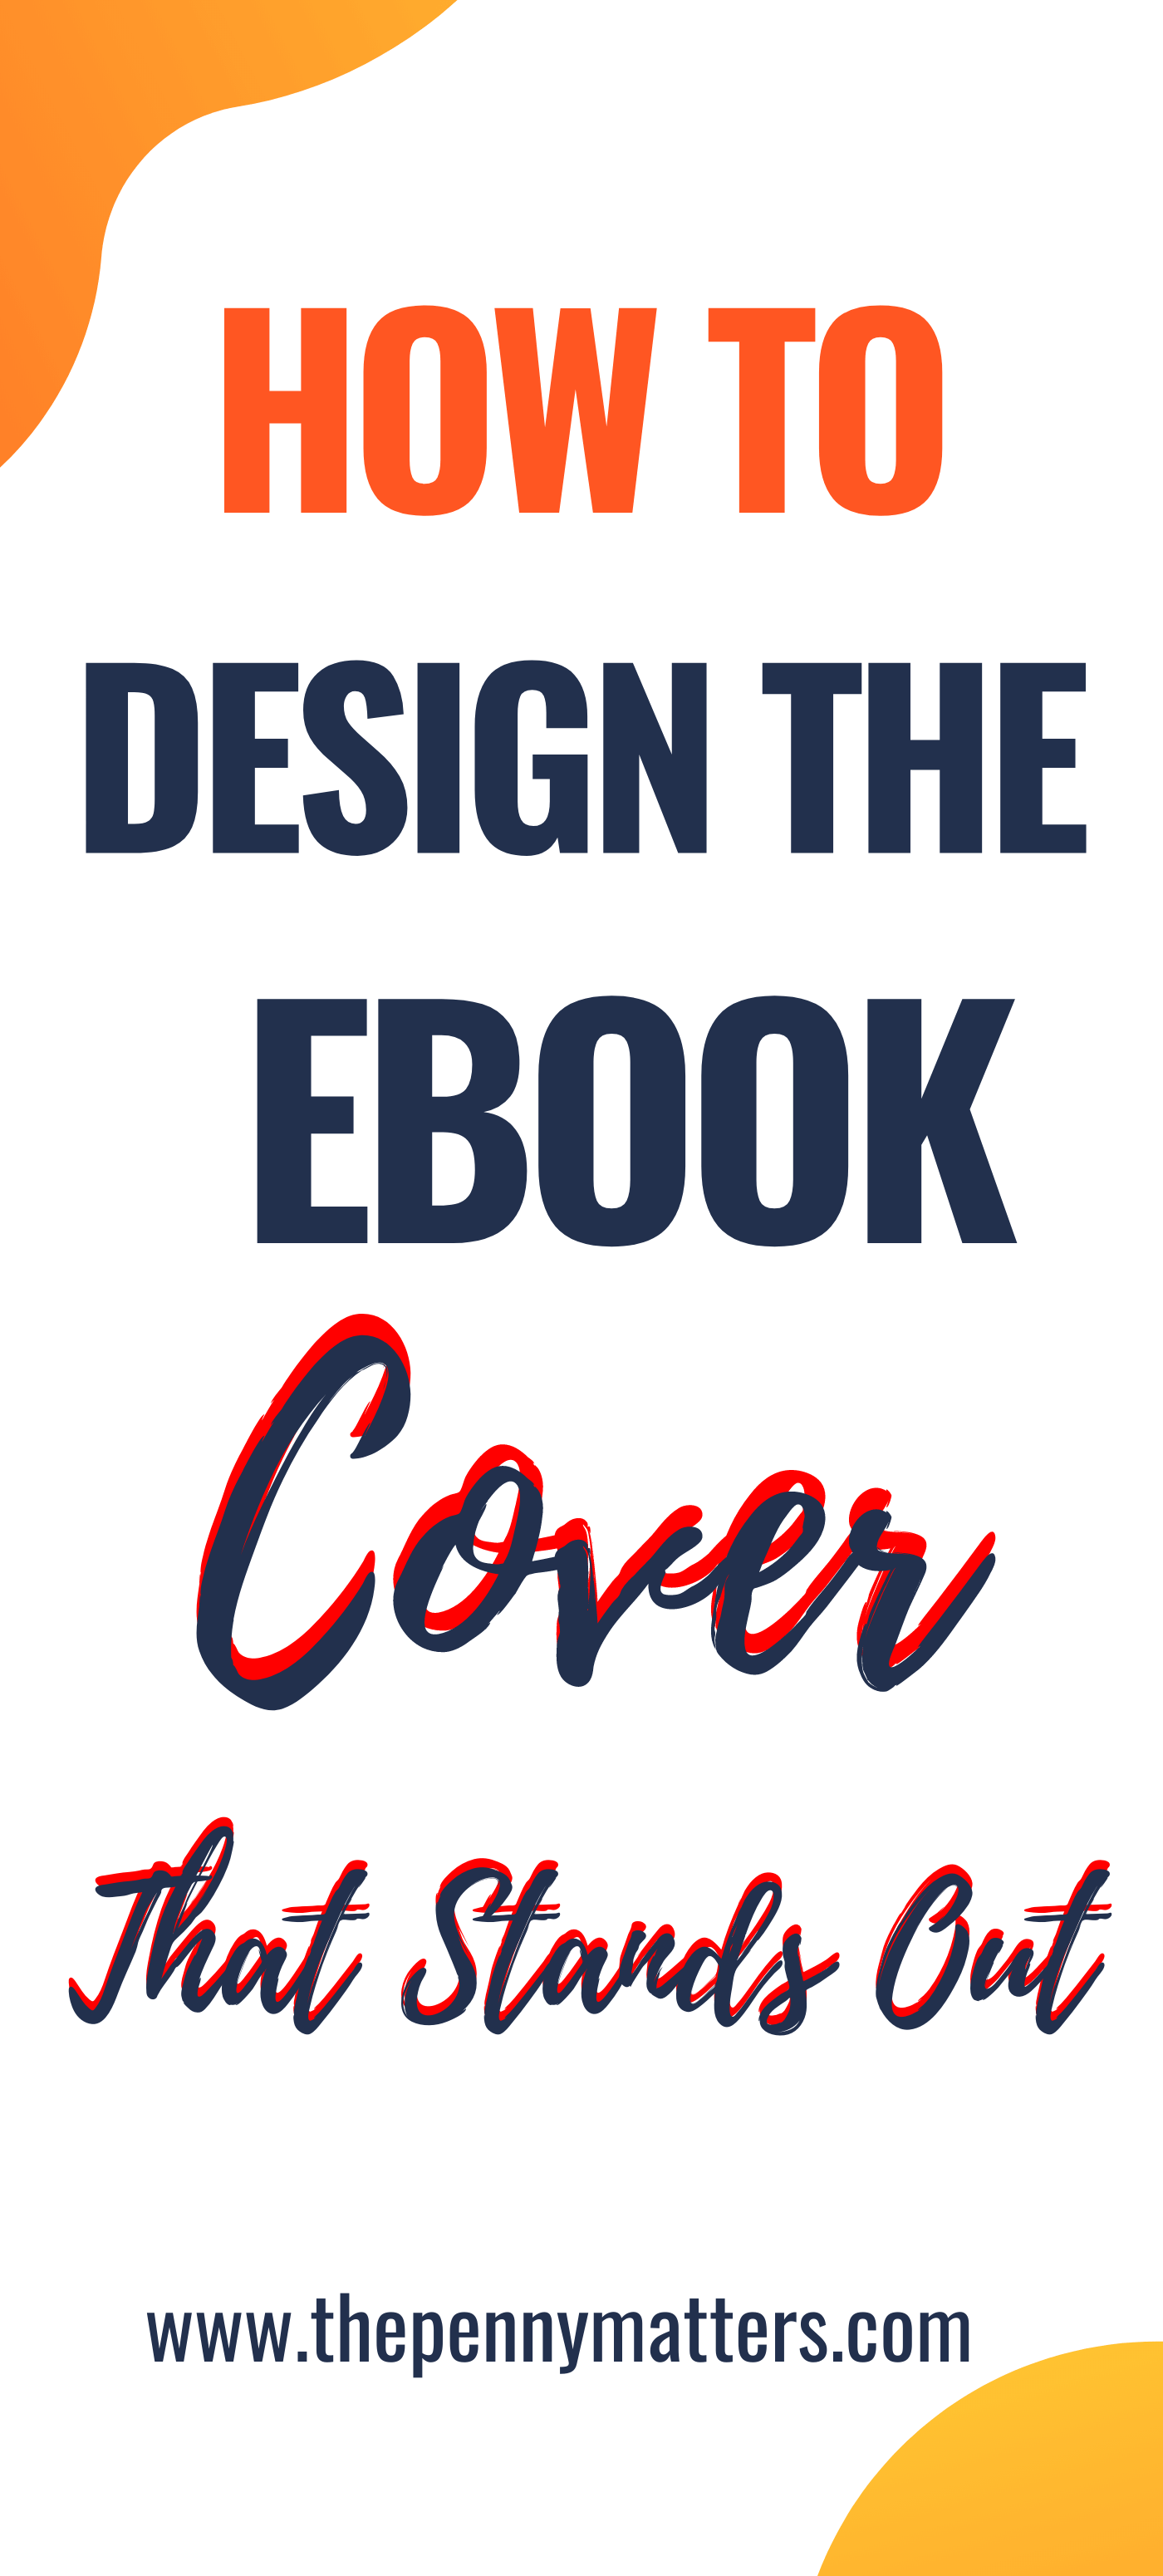 how to design an ebook cover pinterest image